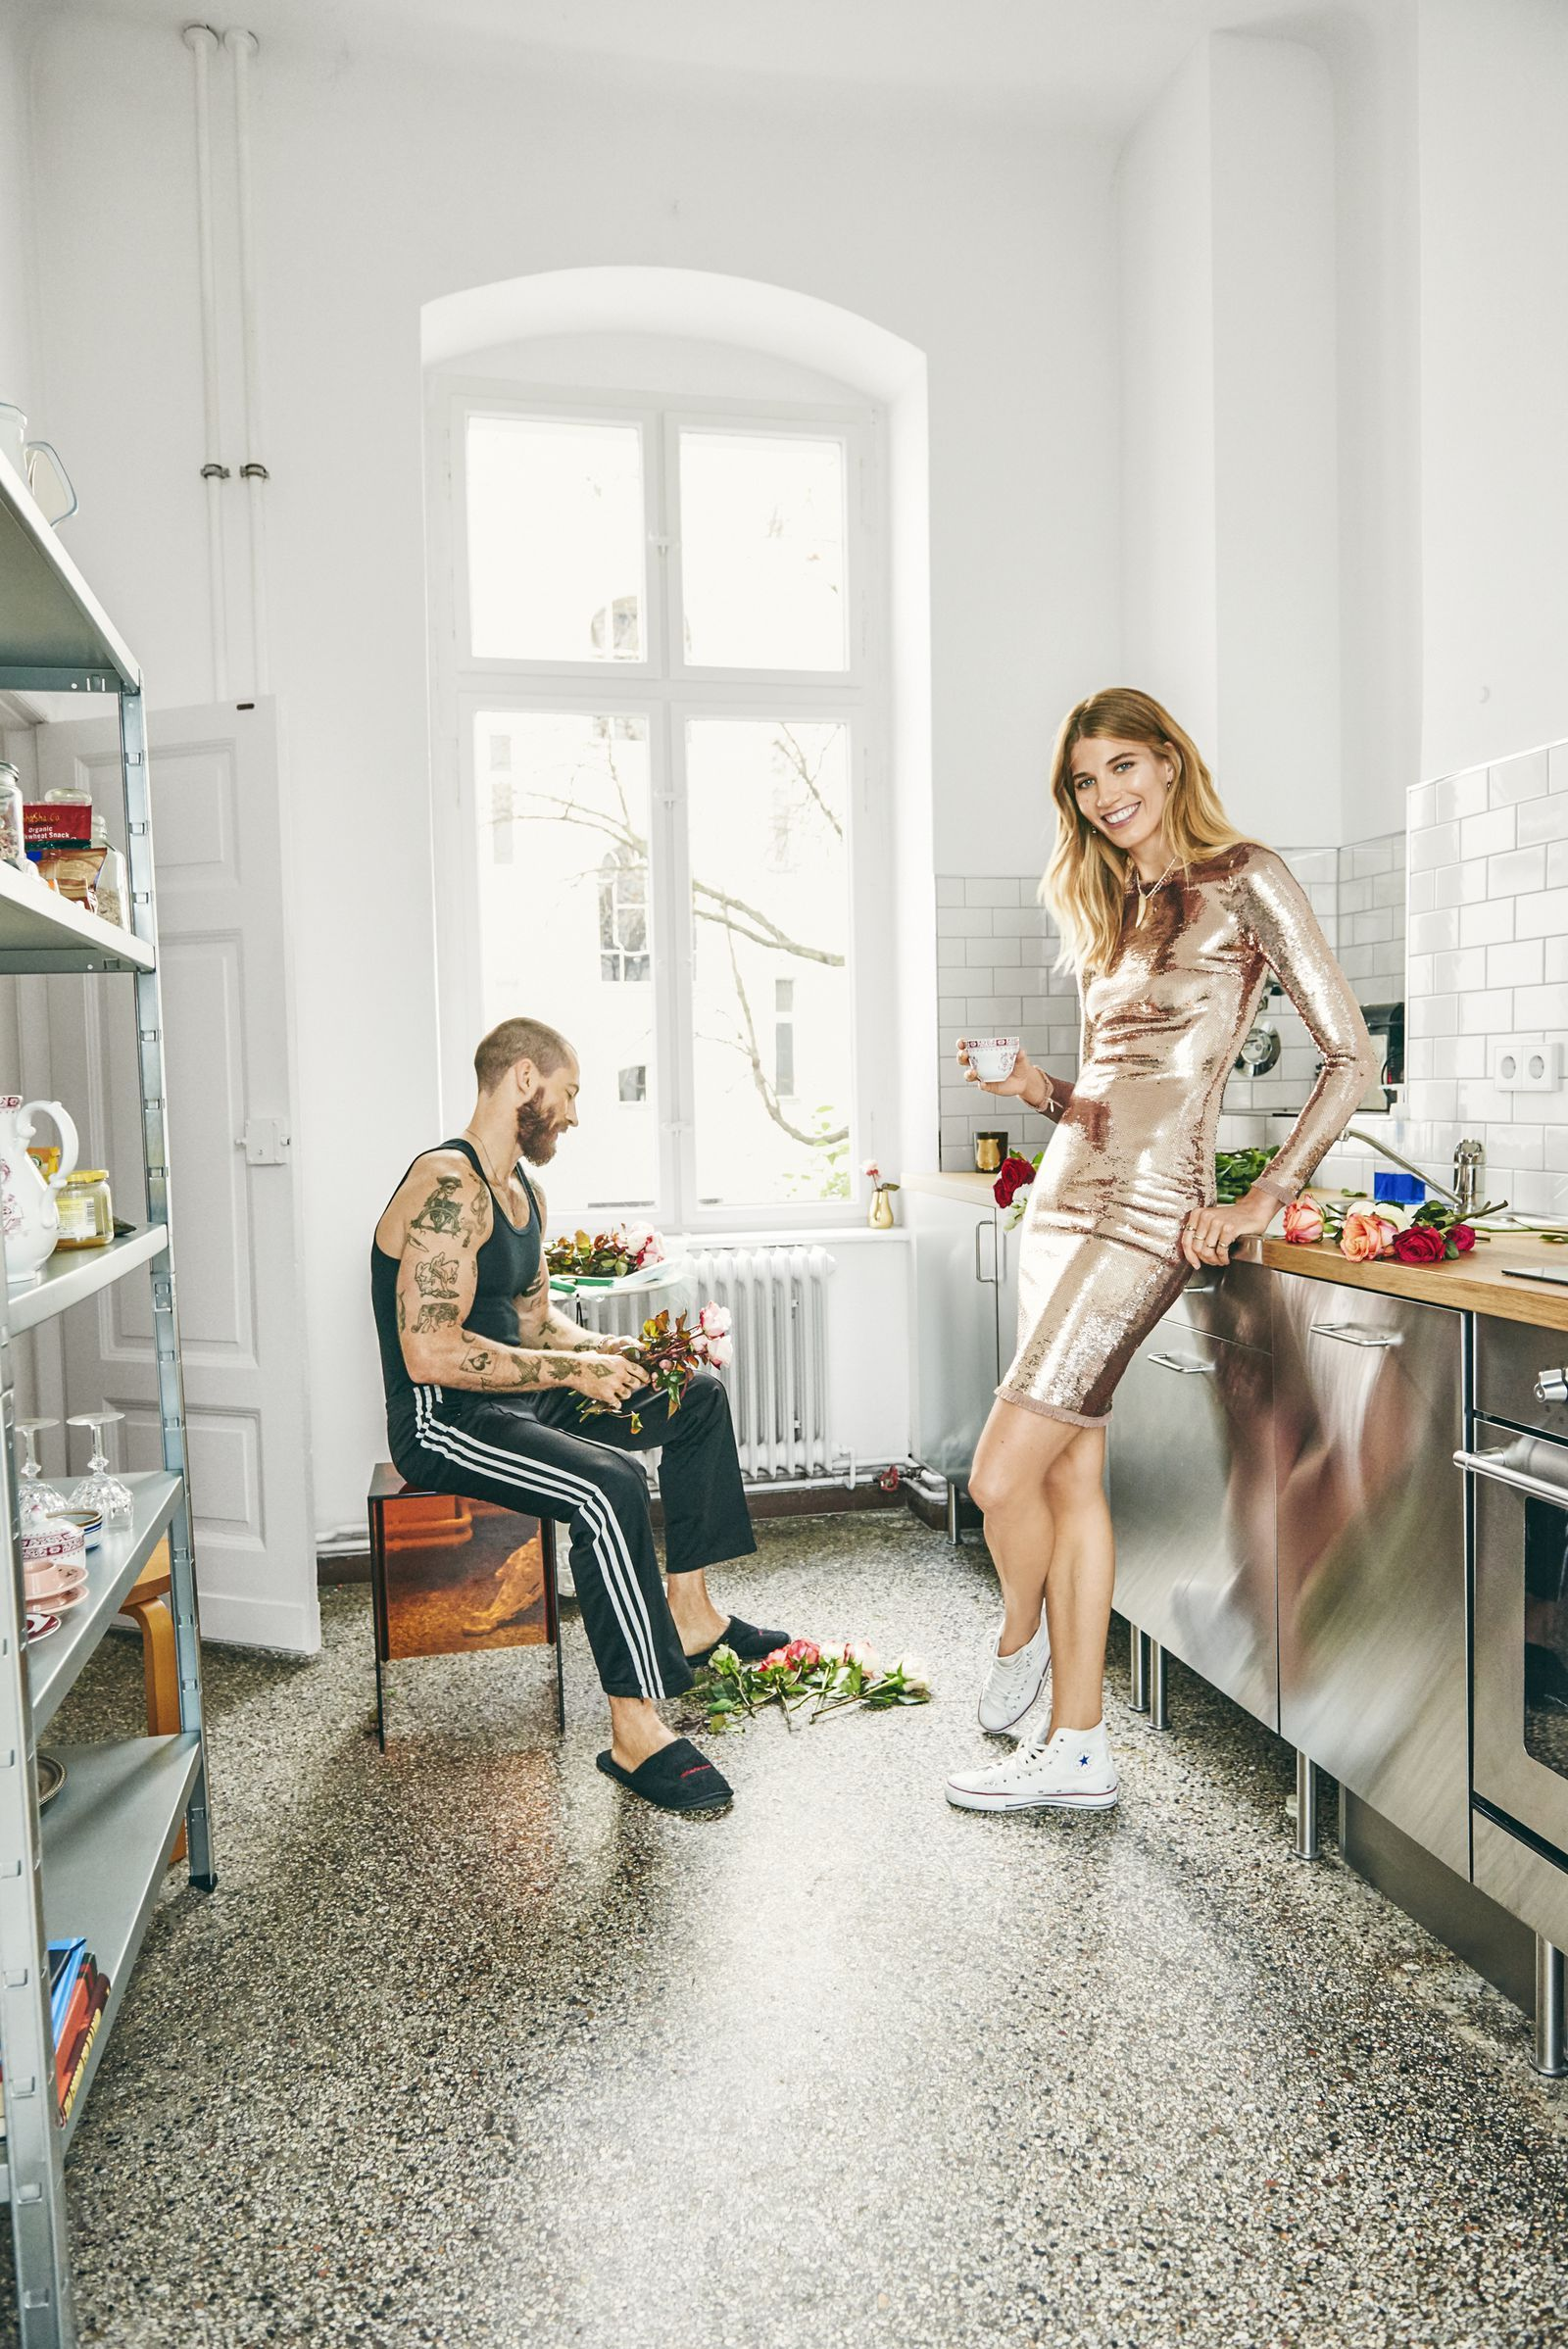 Modern Romance: Inside the Home of Fashions Most Photographed Couple